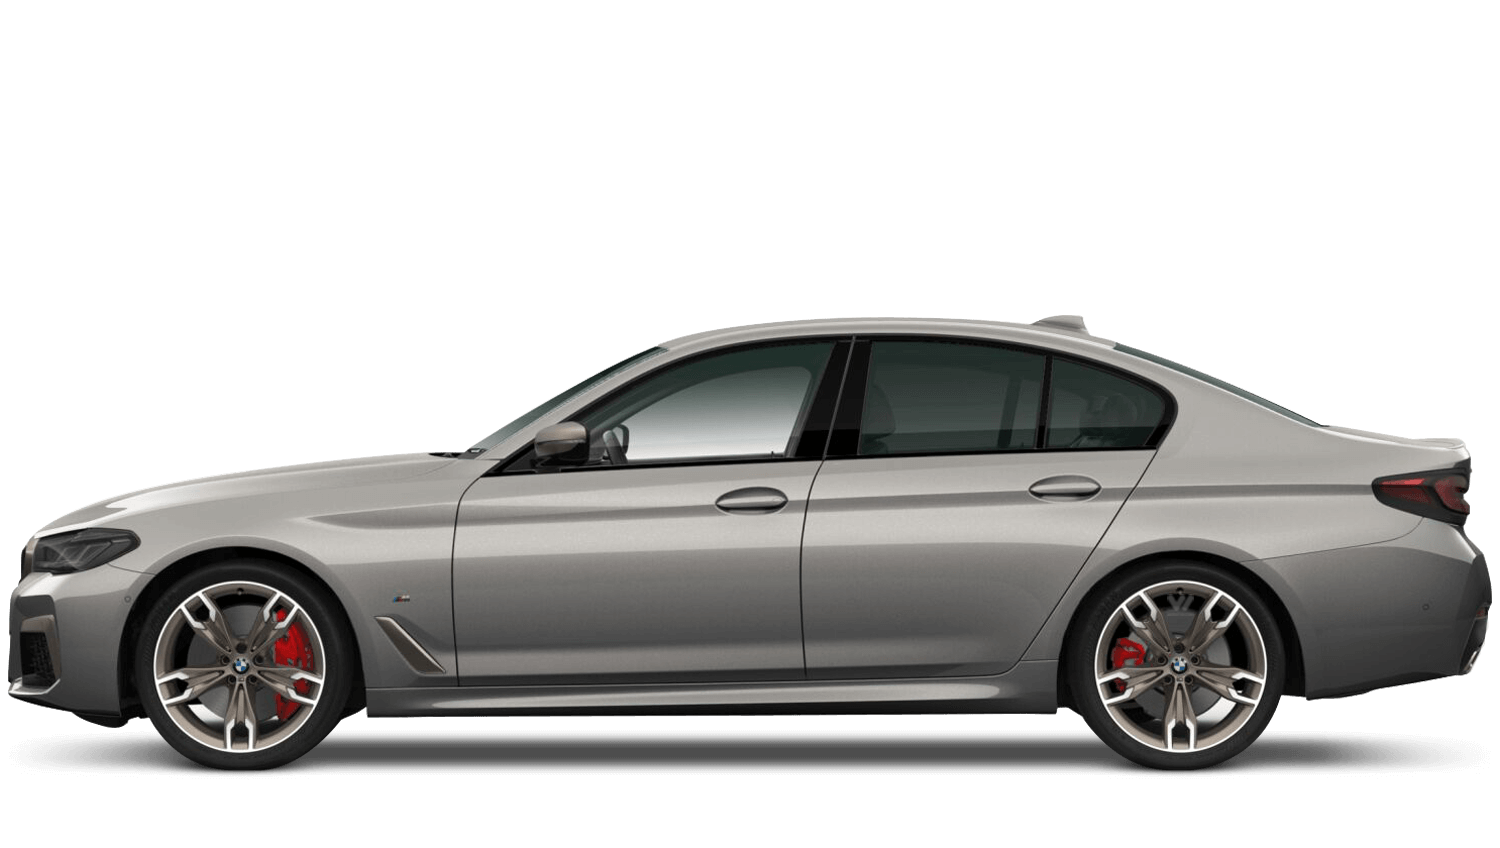 1 Series Saloon New Bmw 5 Series Saloon For Sale Barons And Chandlers Bmw